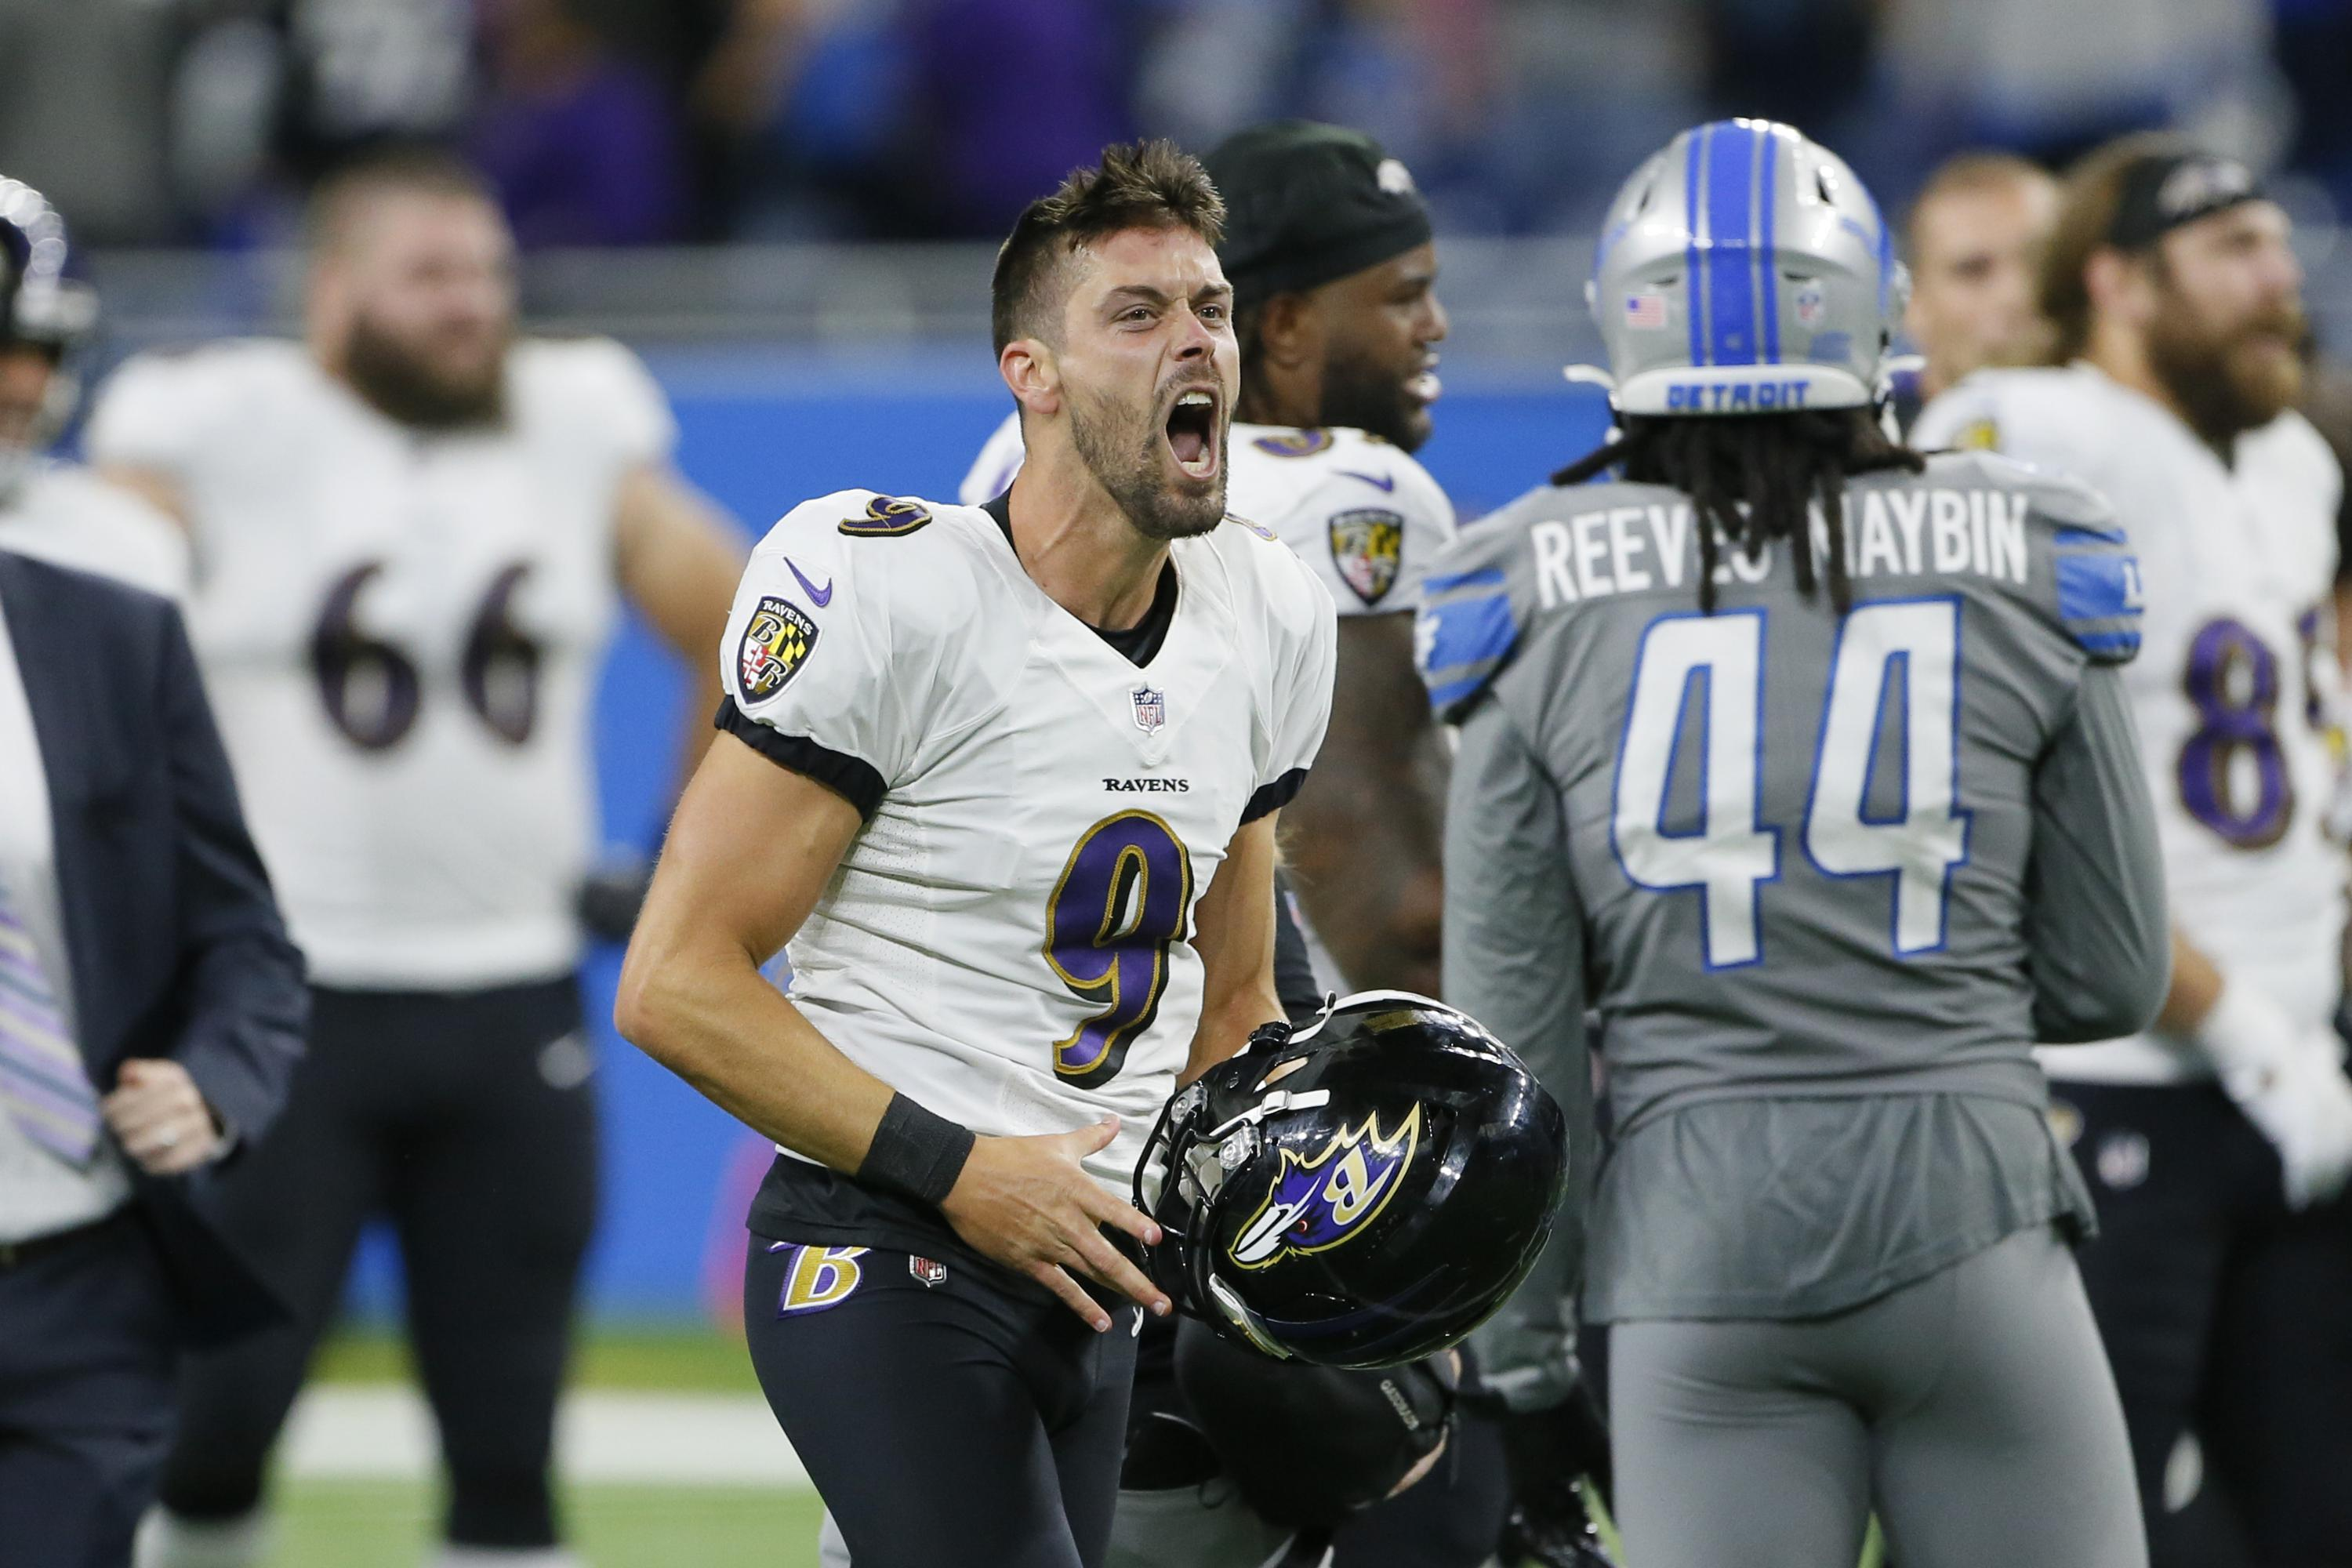 Tucker's NFL-record FG lifts Ravens to 19-17 win over Lions - Associated Press